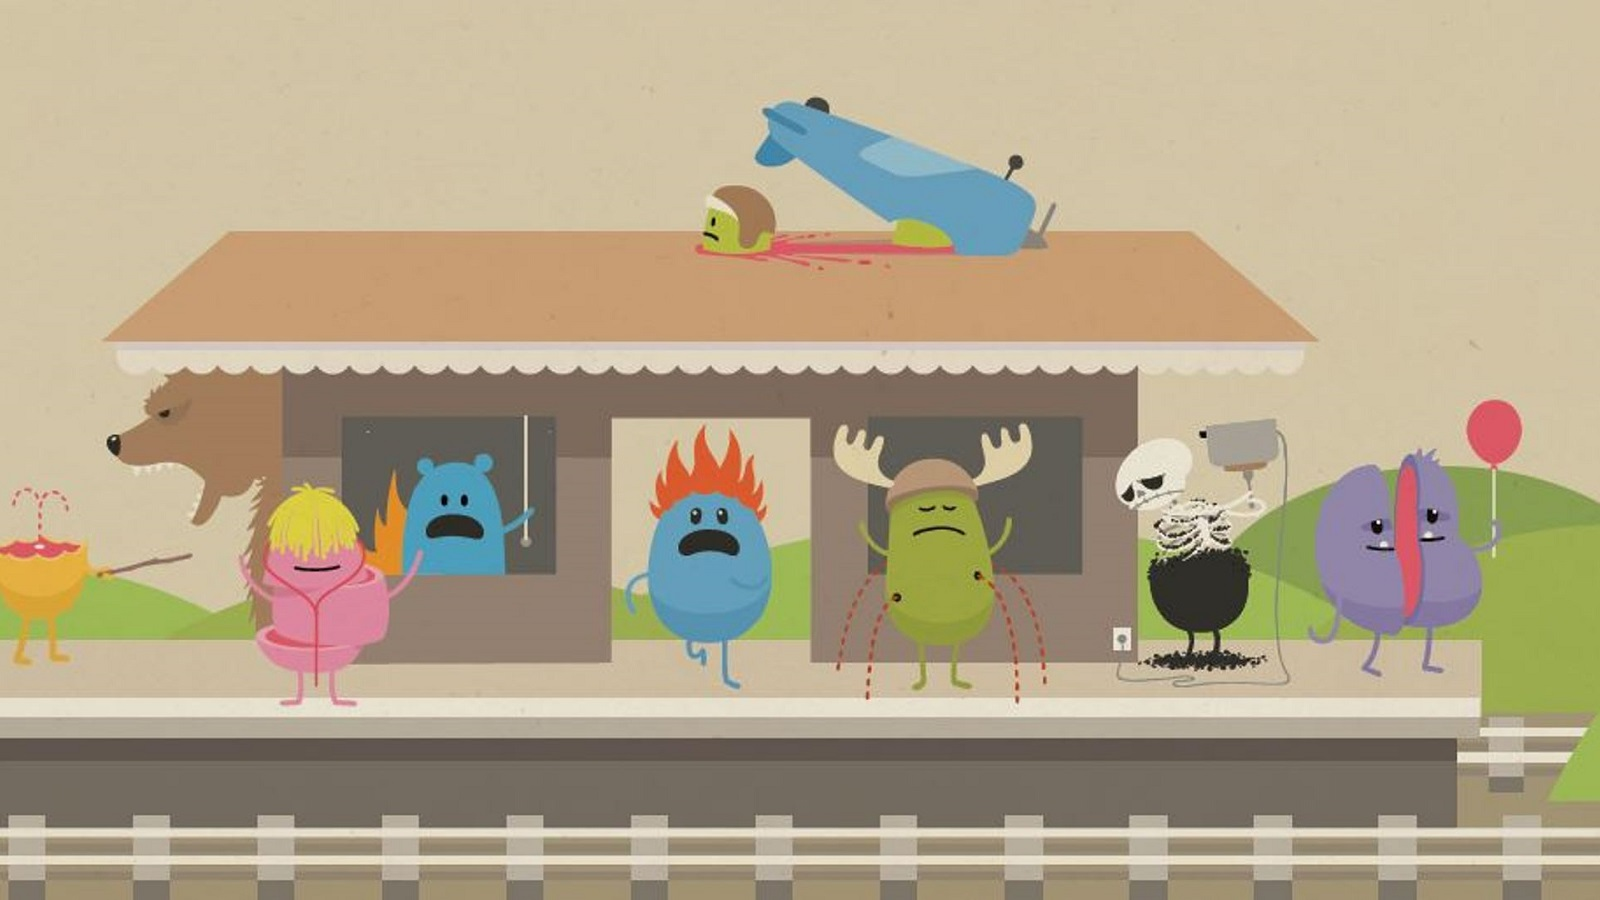 ThrowBrandThursday: There Are Many Dumb Ways to Die